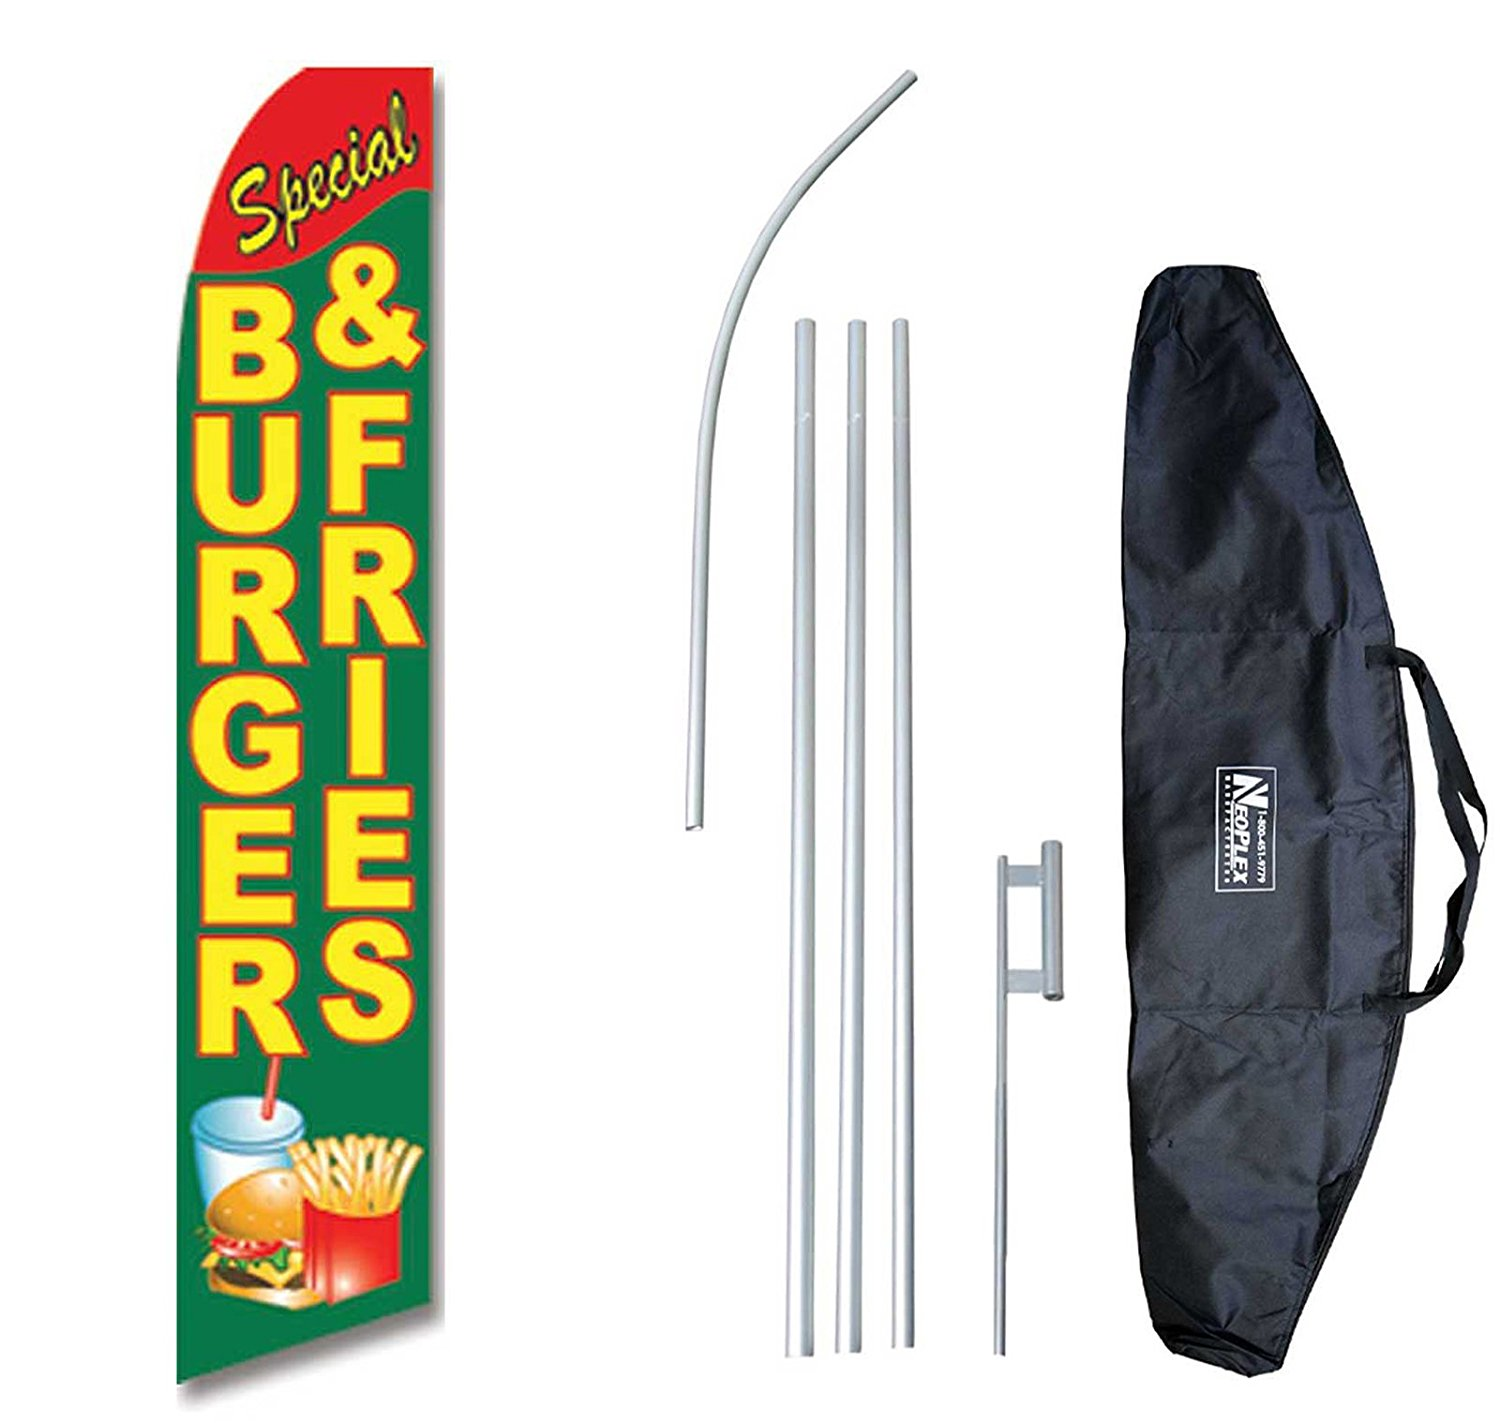 """""""Special Burger & Fries"""" 12-foot Swooper Feather Flag and Case Complete Set...includes 12-foot Flag, 15-foot Pole, Ground Spike, and Carrying/Storage Case"""